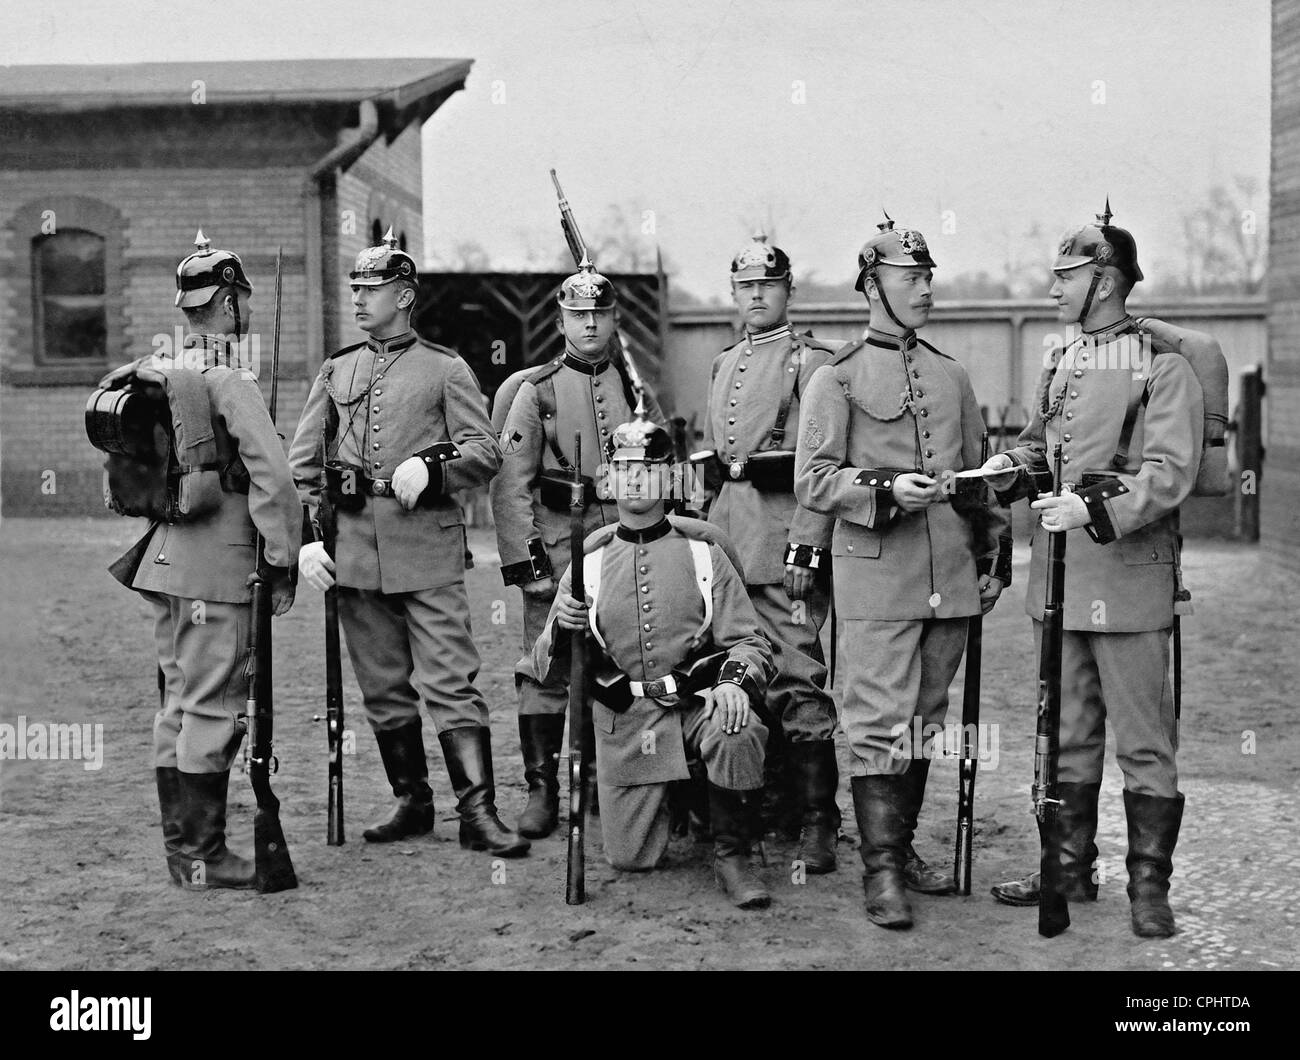 Field-gray uniforms of the German soldiers, 1910 - Stock Image